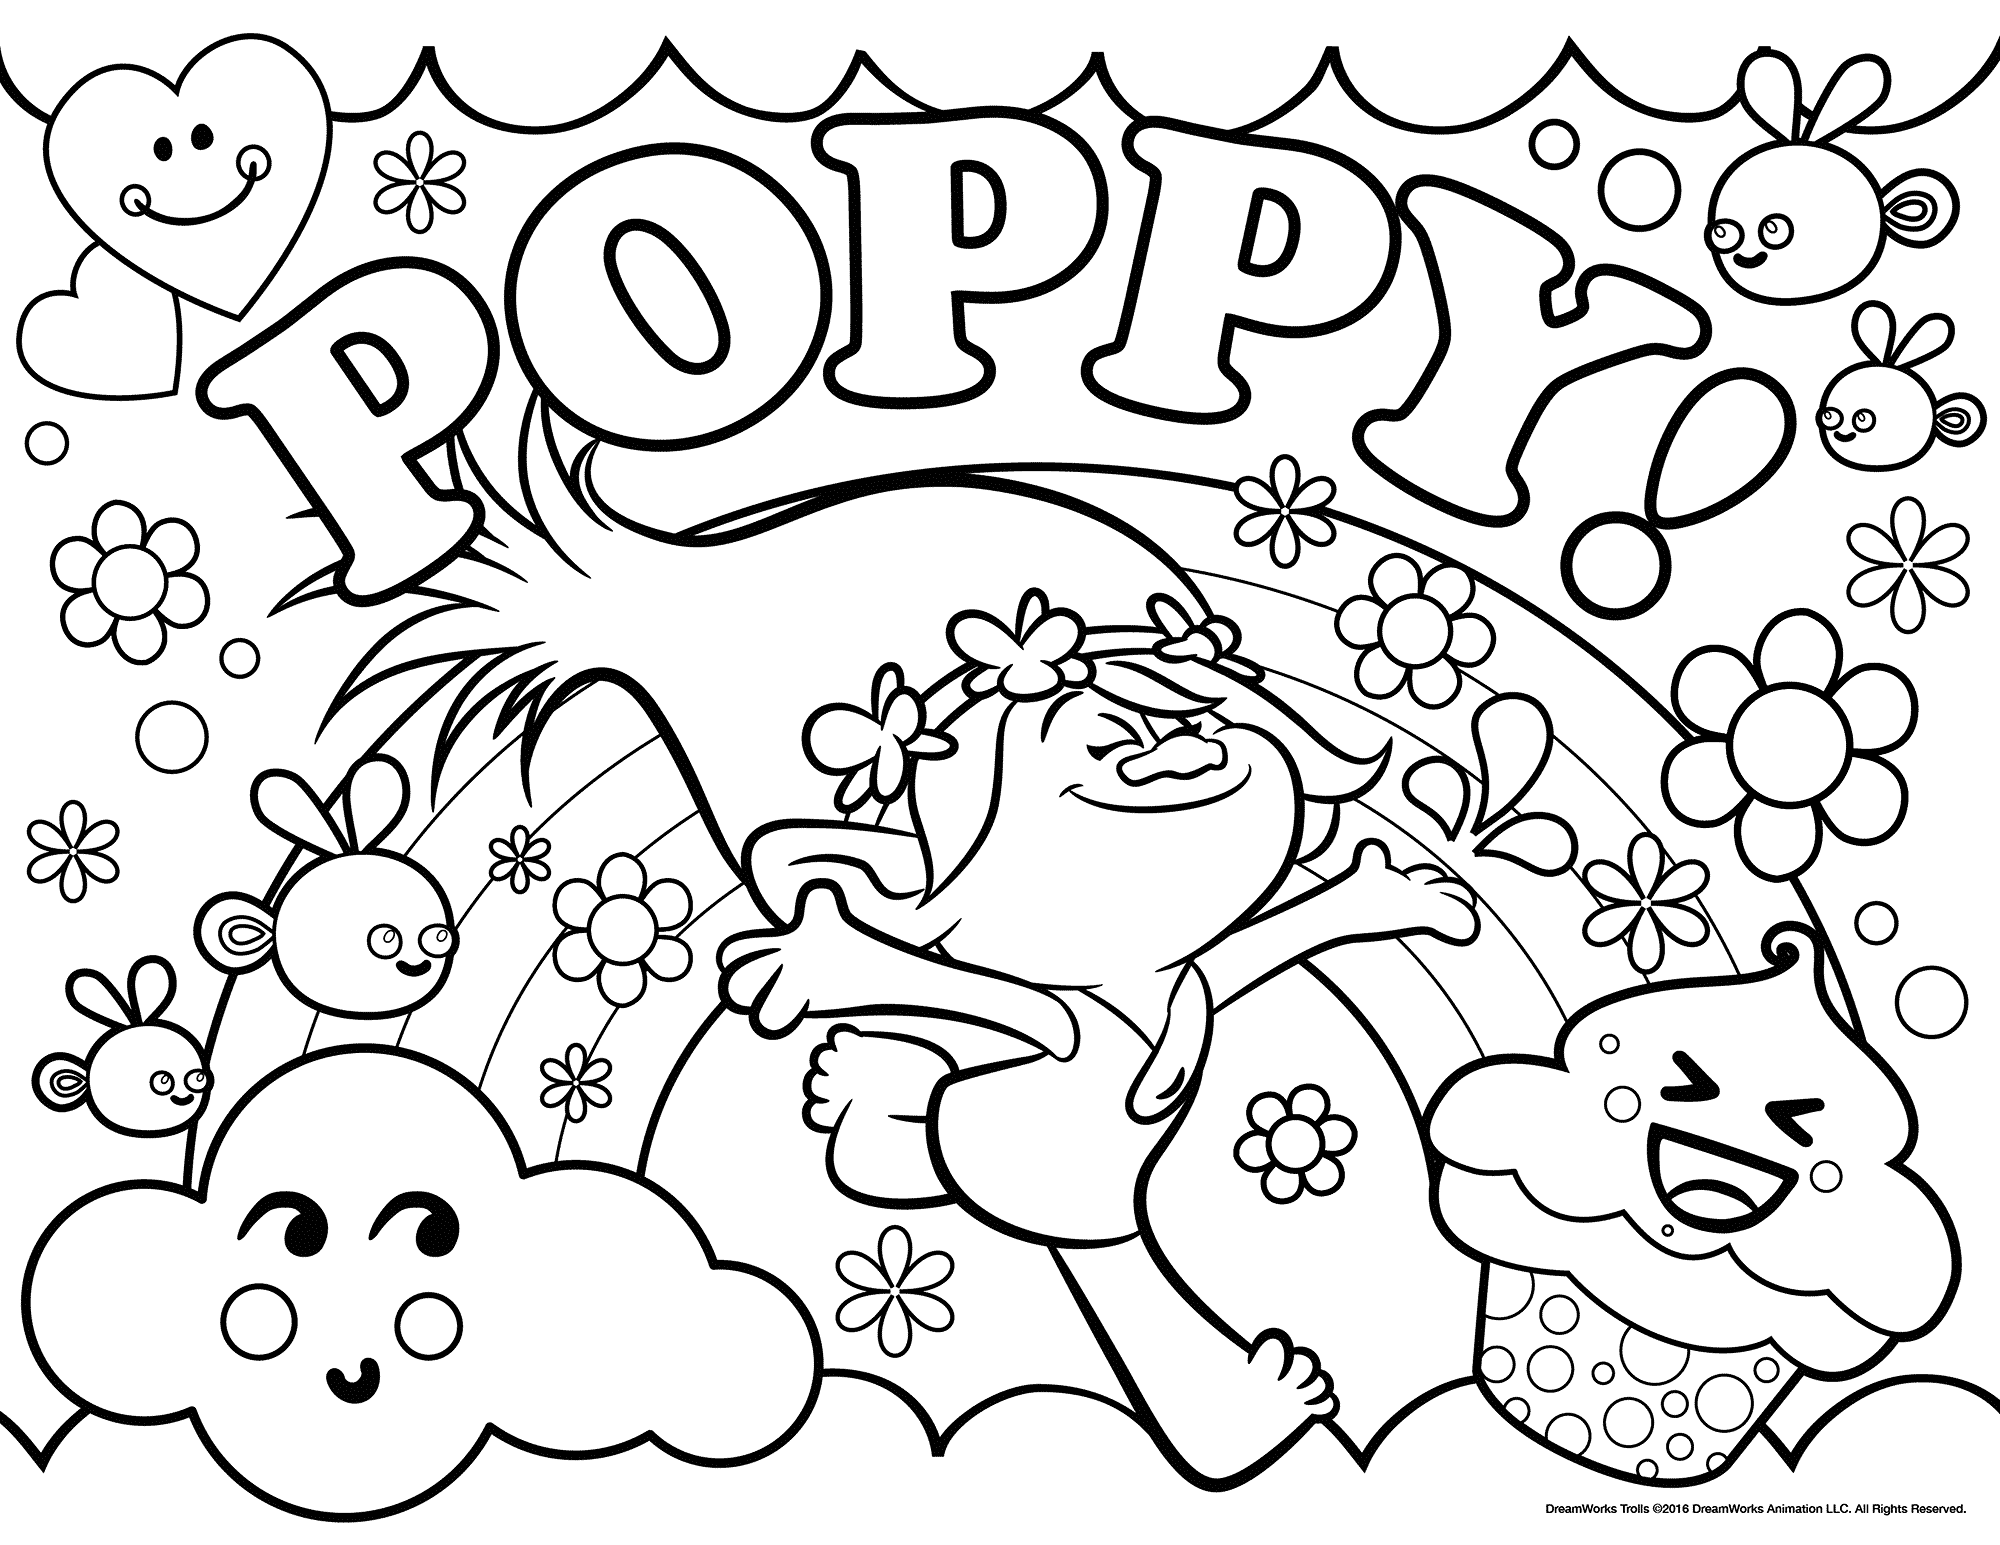 Coloring Rocks Poppy Coloring Page Cartoon Coloring Pages Coloring Books